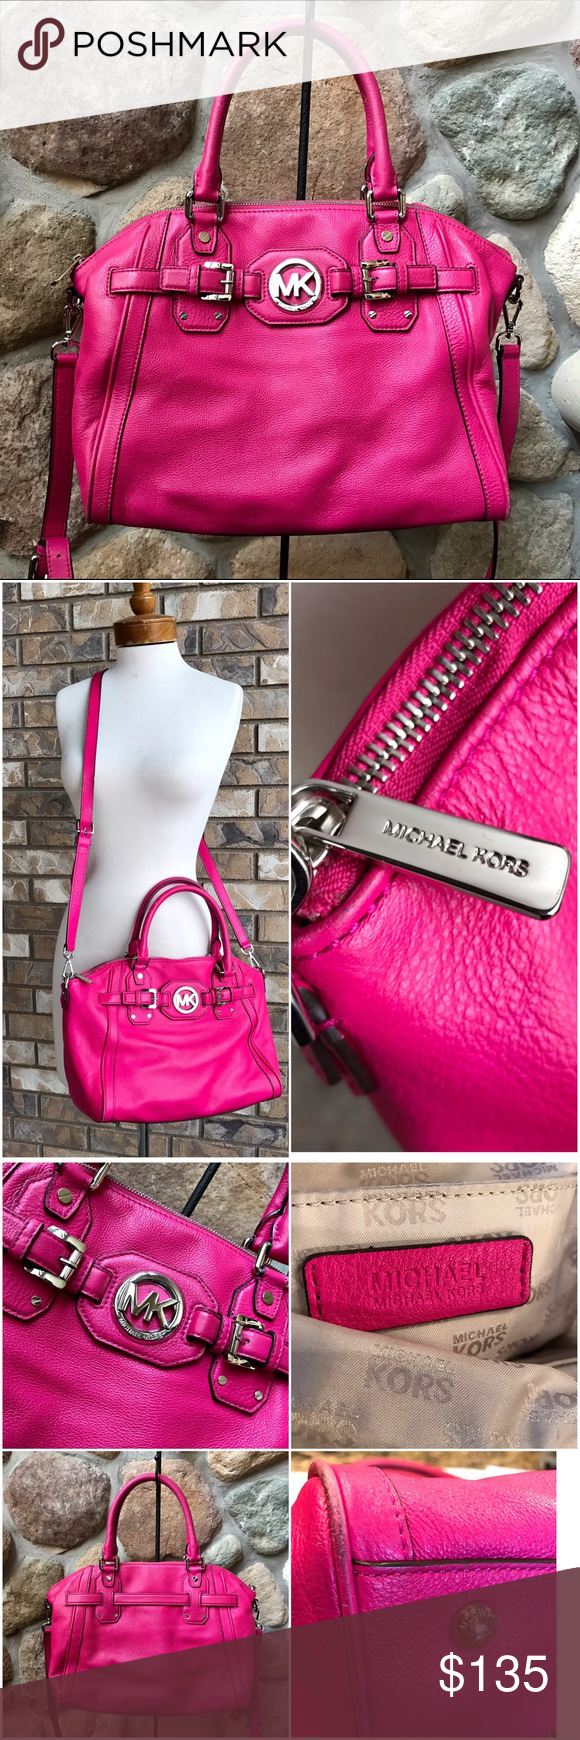 """Michael Kors Hudson leather Bag Michael Kors genuine leather Satchel bag in Raspberry color.  Silver hardware.  Multiple compartments interior.  Detachable messenger strap.  Wear on bottom corners. See third bottom picture.  Paid $398 January 2016.  Measures 16"""" by 14"""" , 10"""" drop with 5"""" depth. Michael Kors Bags Satchels"""